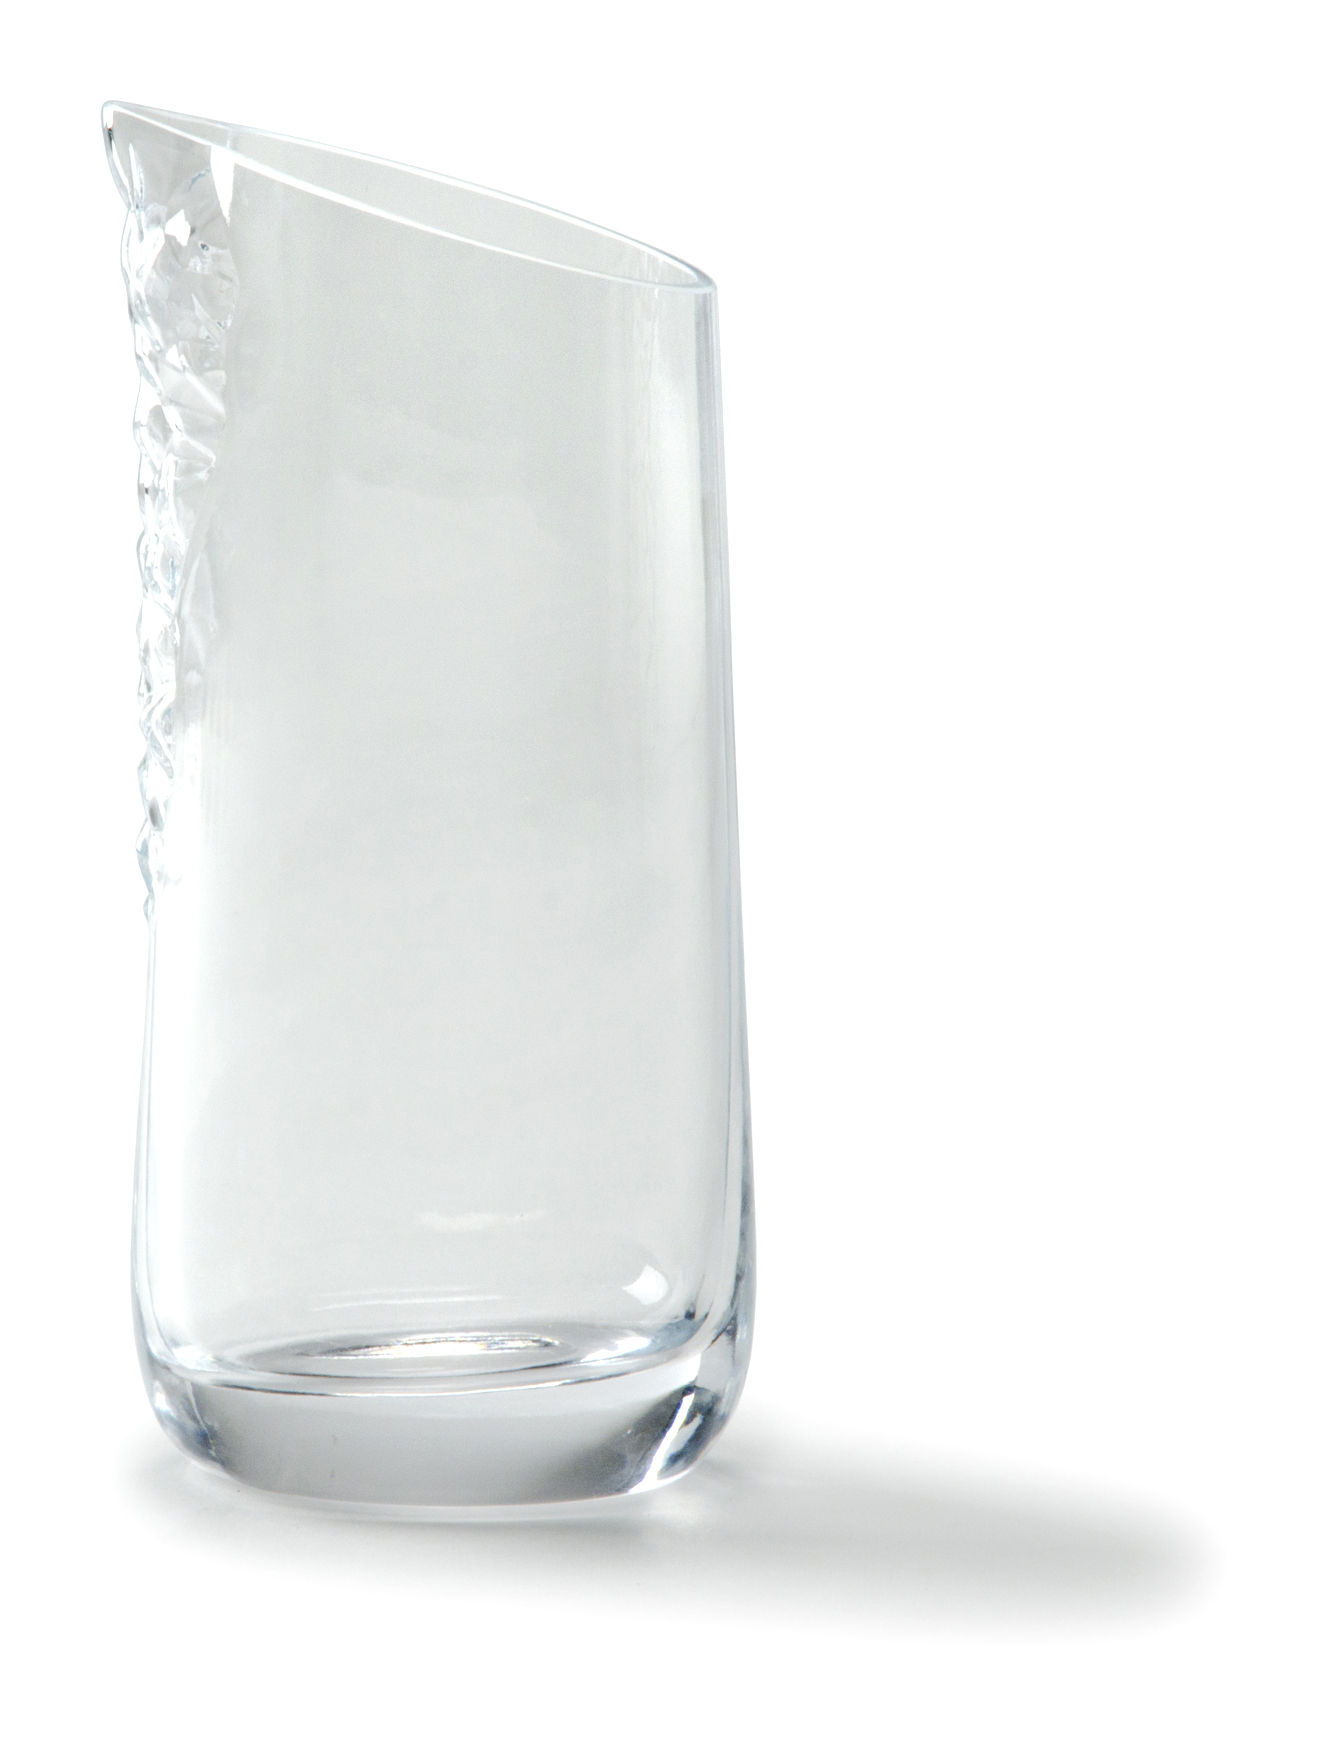 Tableware - Water Carafes & Wine Decanters - Minera Carafe - 1 L by Petite Friture - Clear - Glass